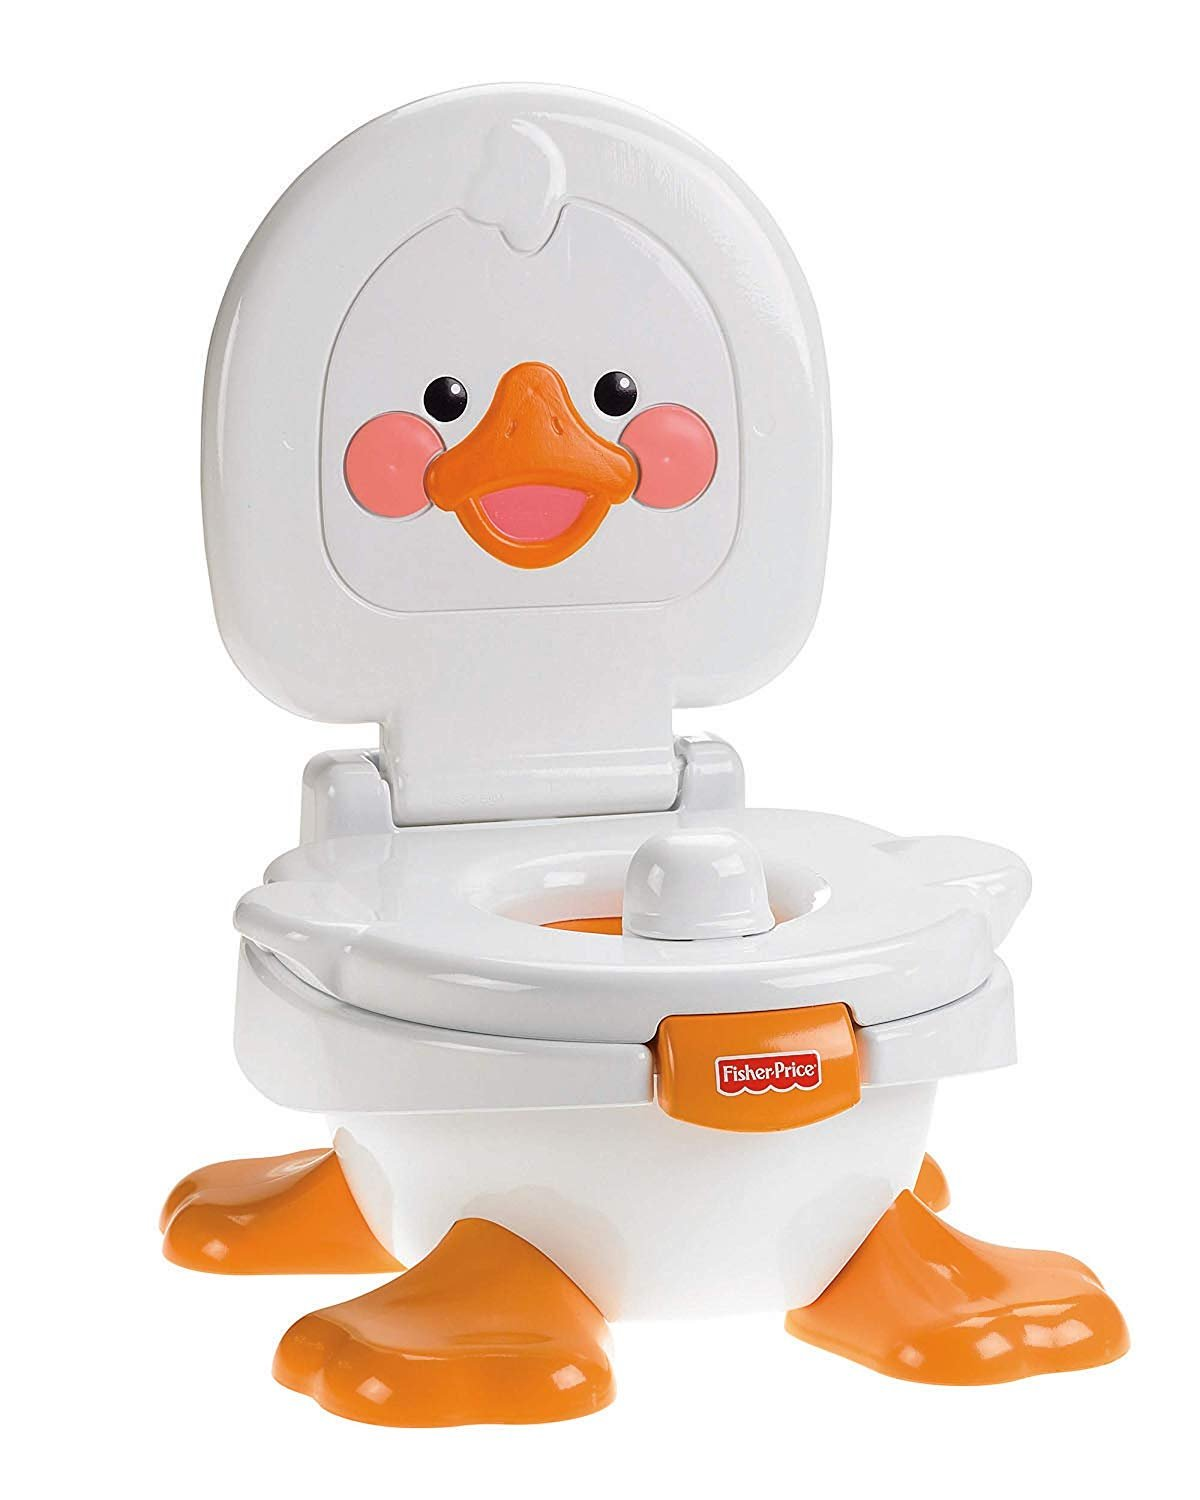 Fisher-Price T6211 Ducky Fun 3-in-1 Potty